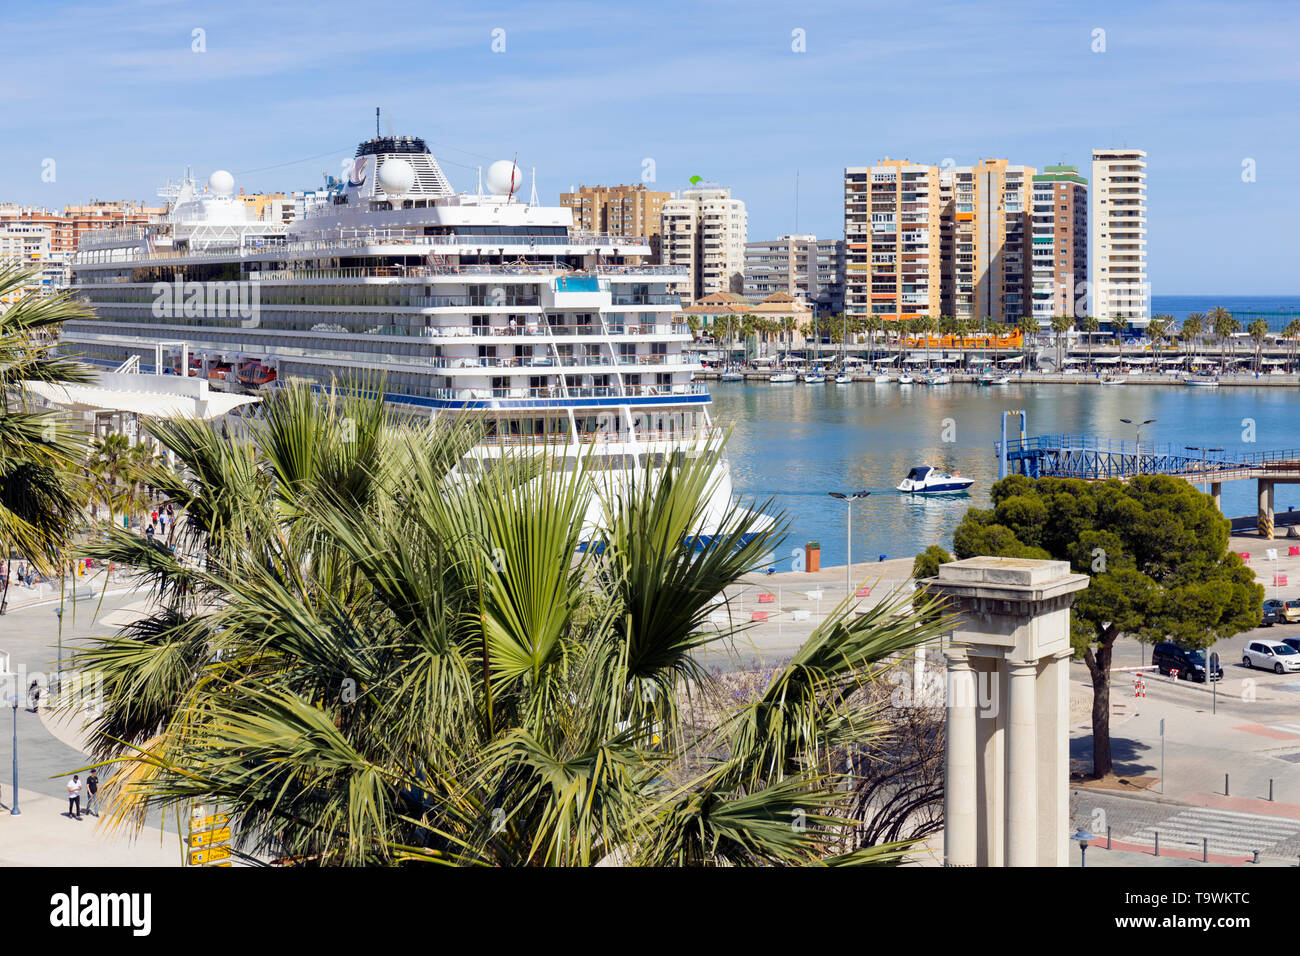 Viking Cruise Stock Photos & Viking Cruise Stock Images - Alamy